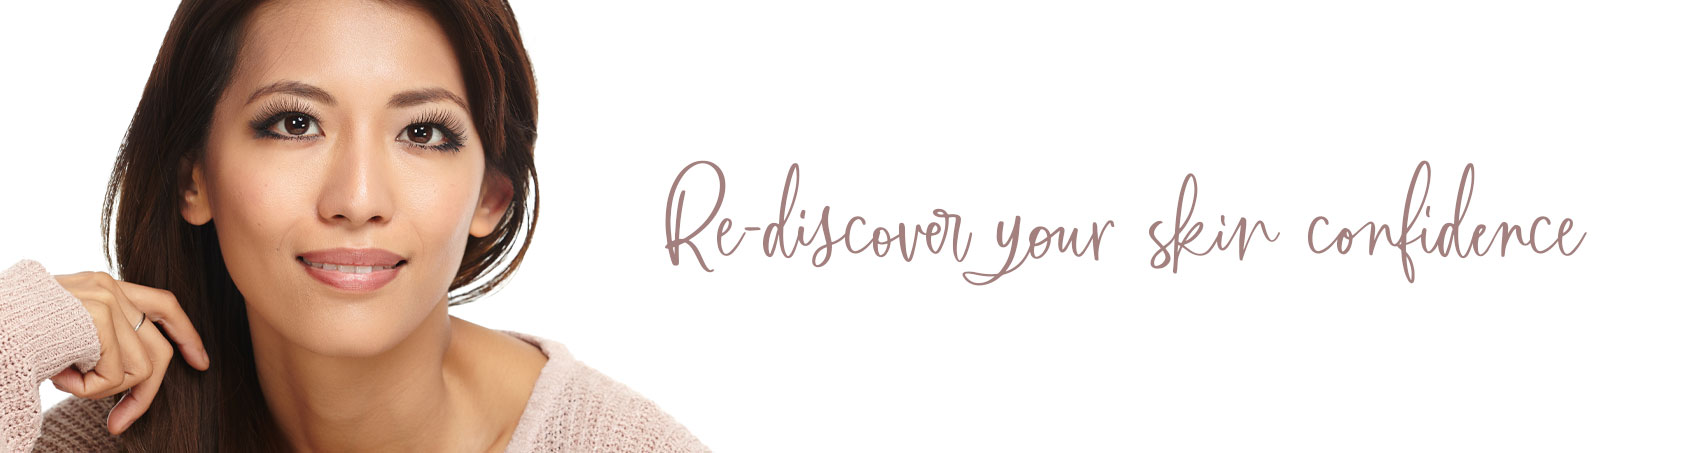 Re-discover your skin confidence